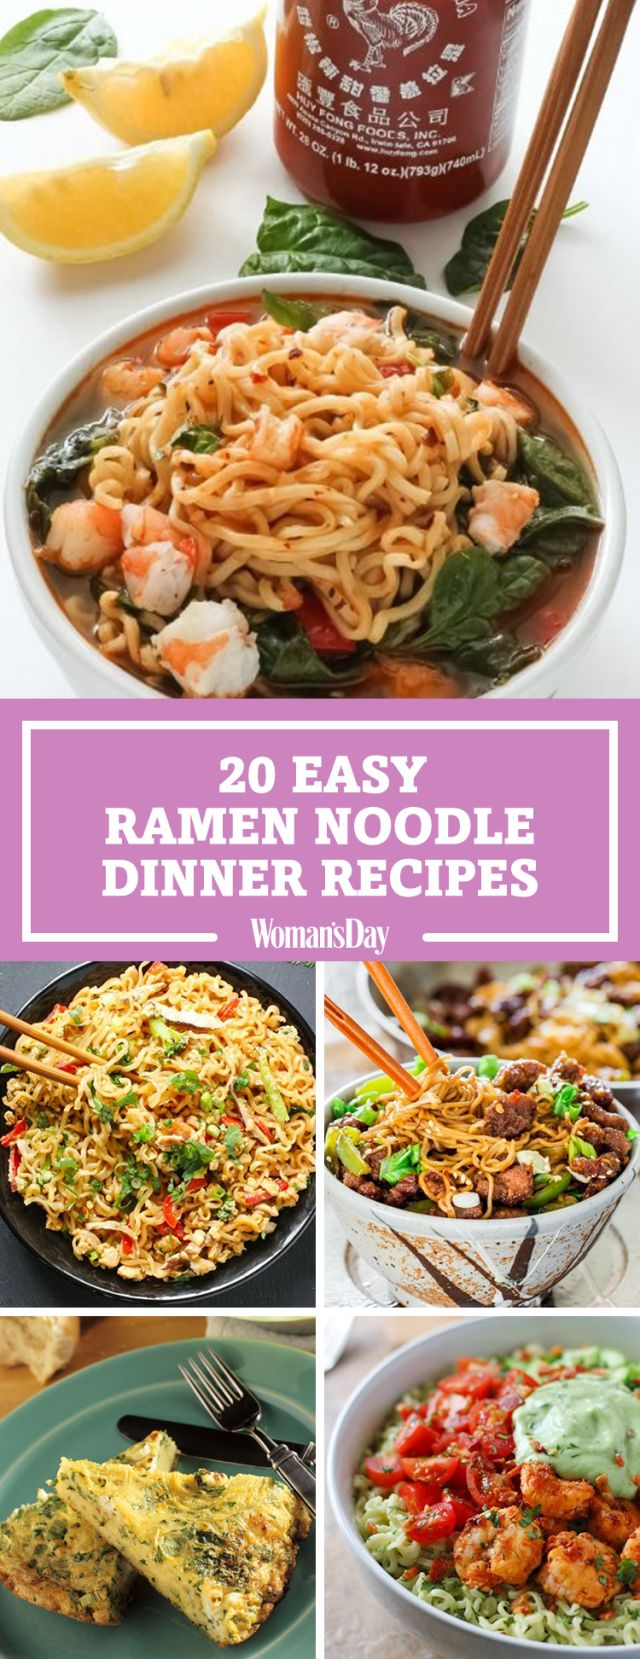 20 ramen recipes, perfect for the college student on a budget